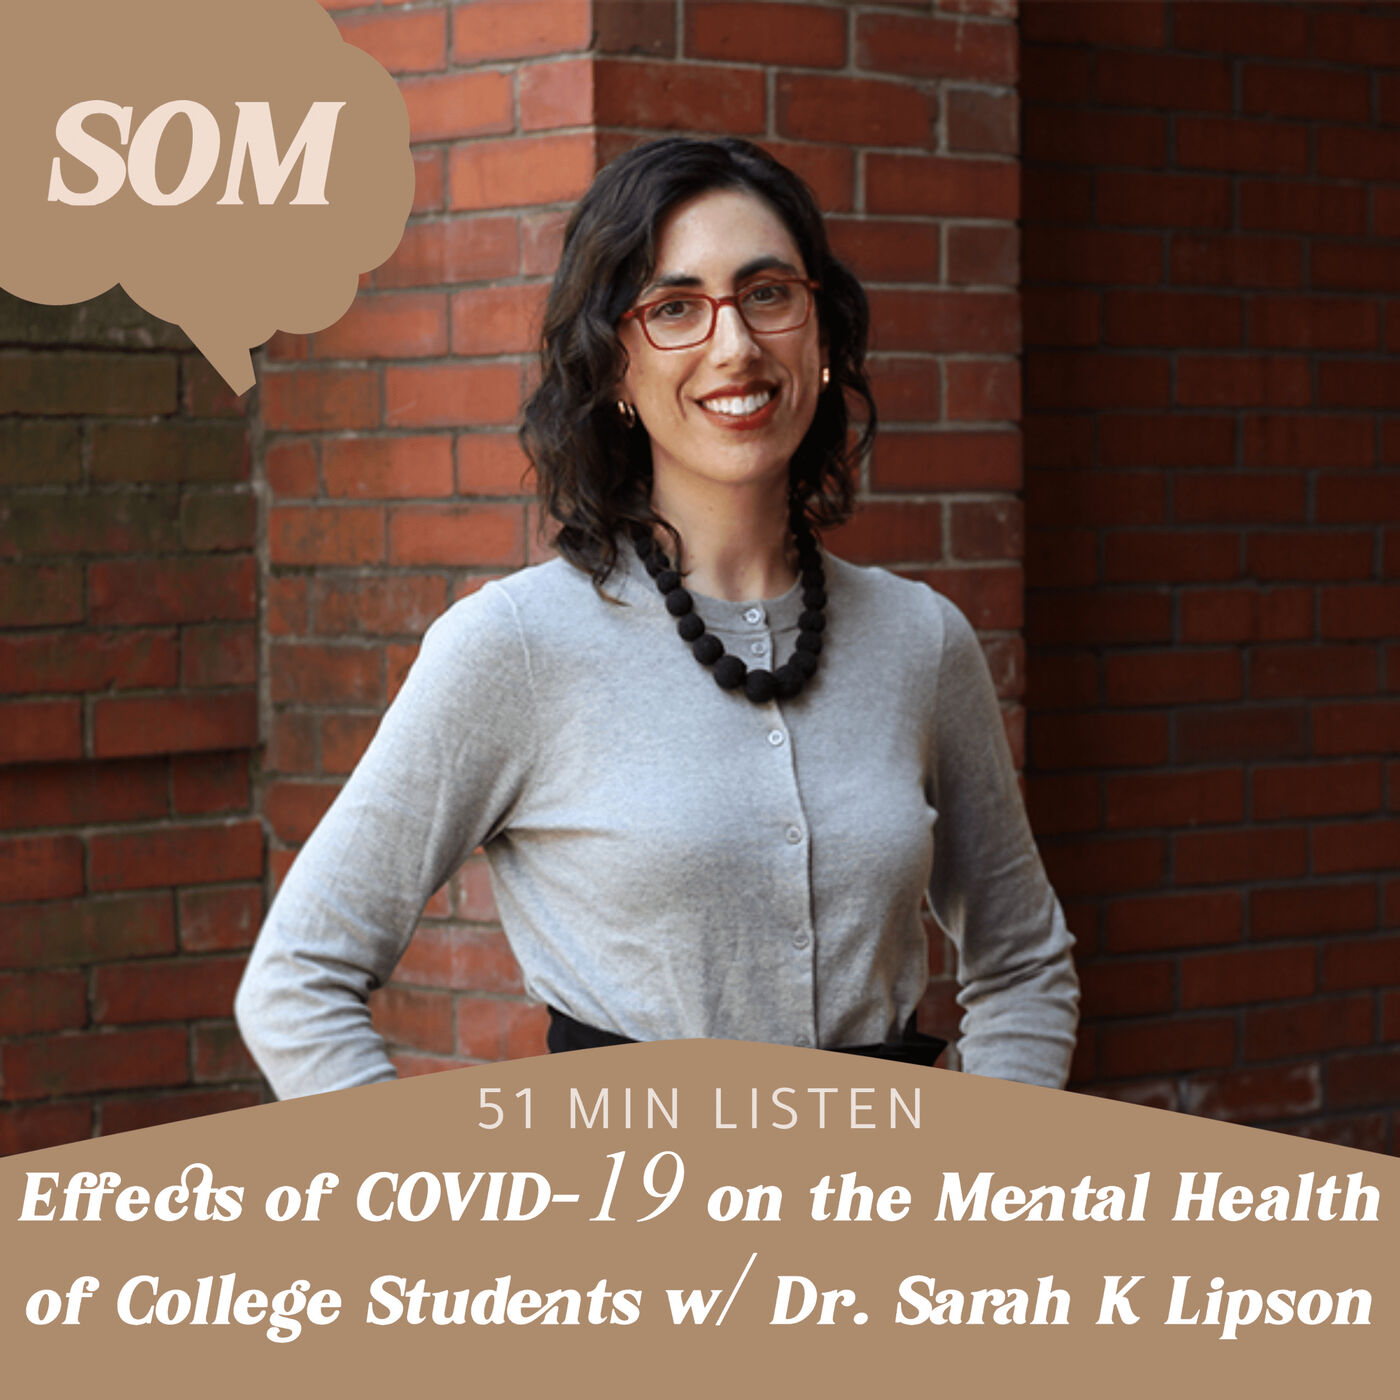 Effects of COVID-19 on the Mental Health of College Students w/ Dr. Sarah K Lipson